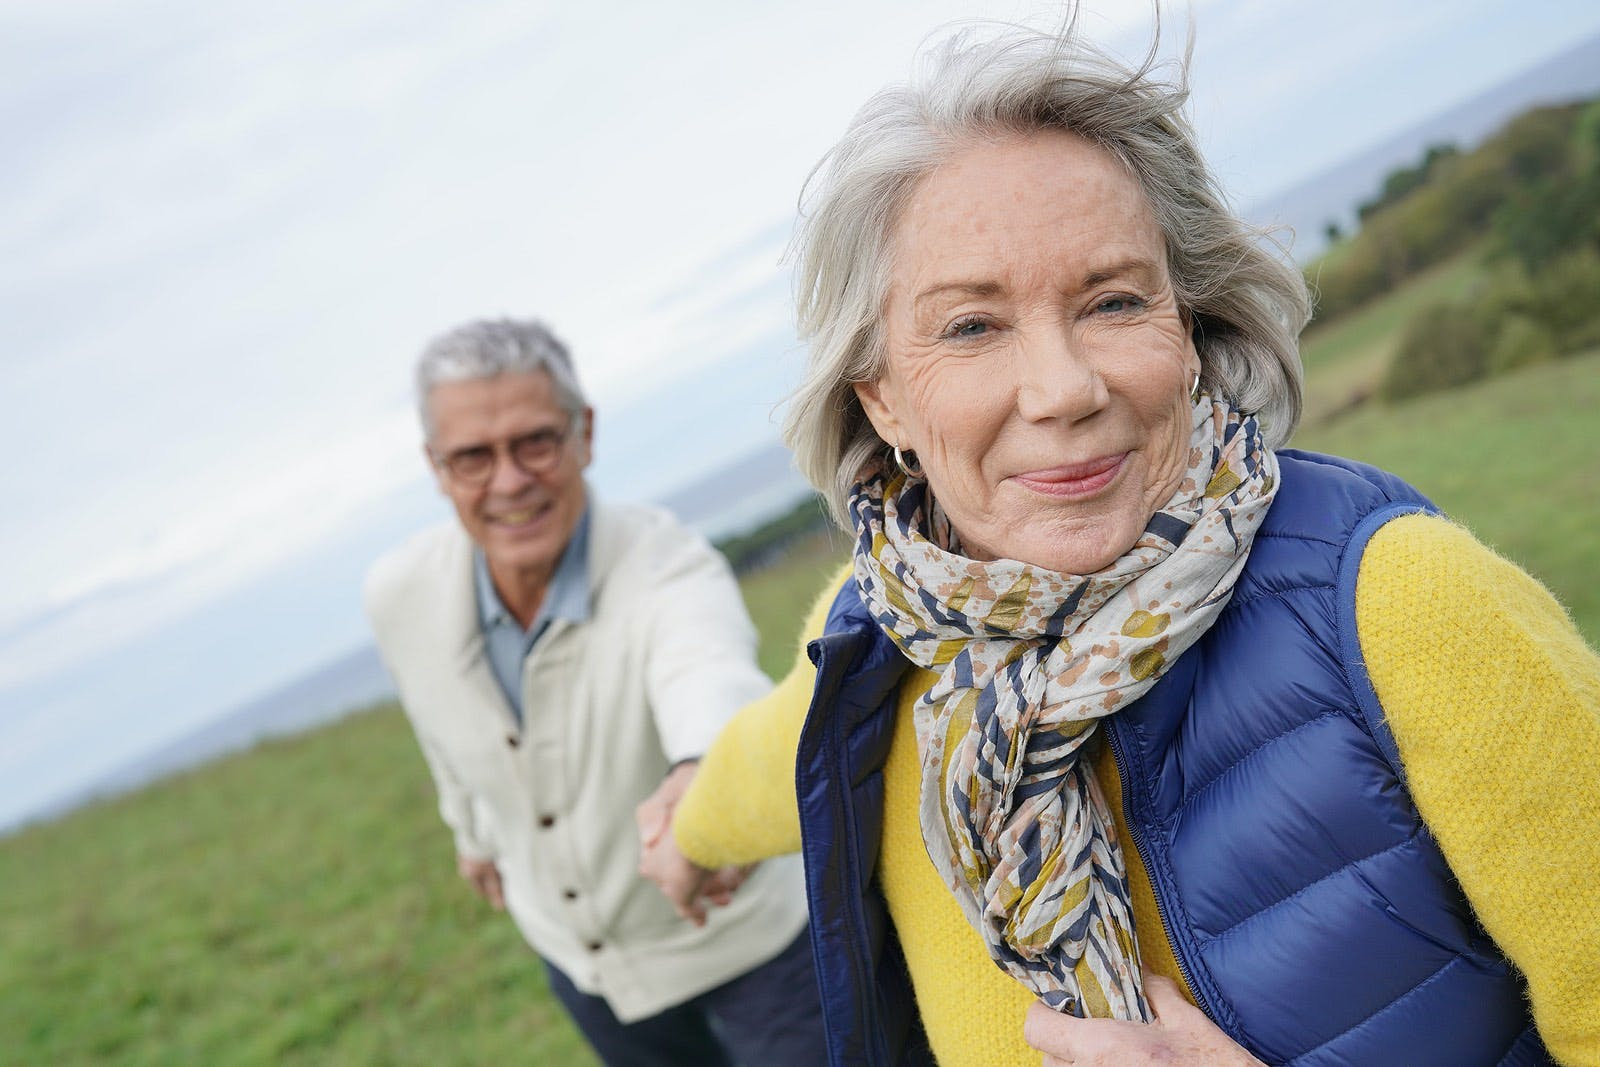 Older woman leads man on walk for light physical activity